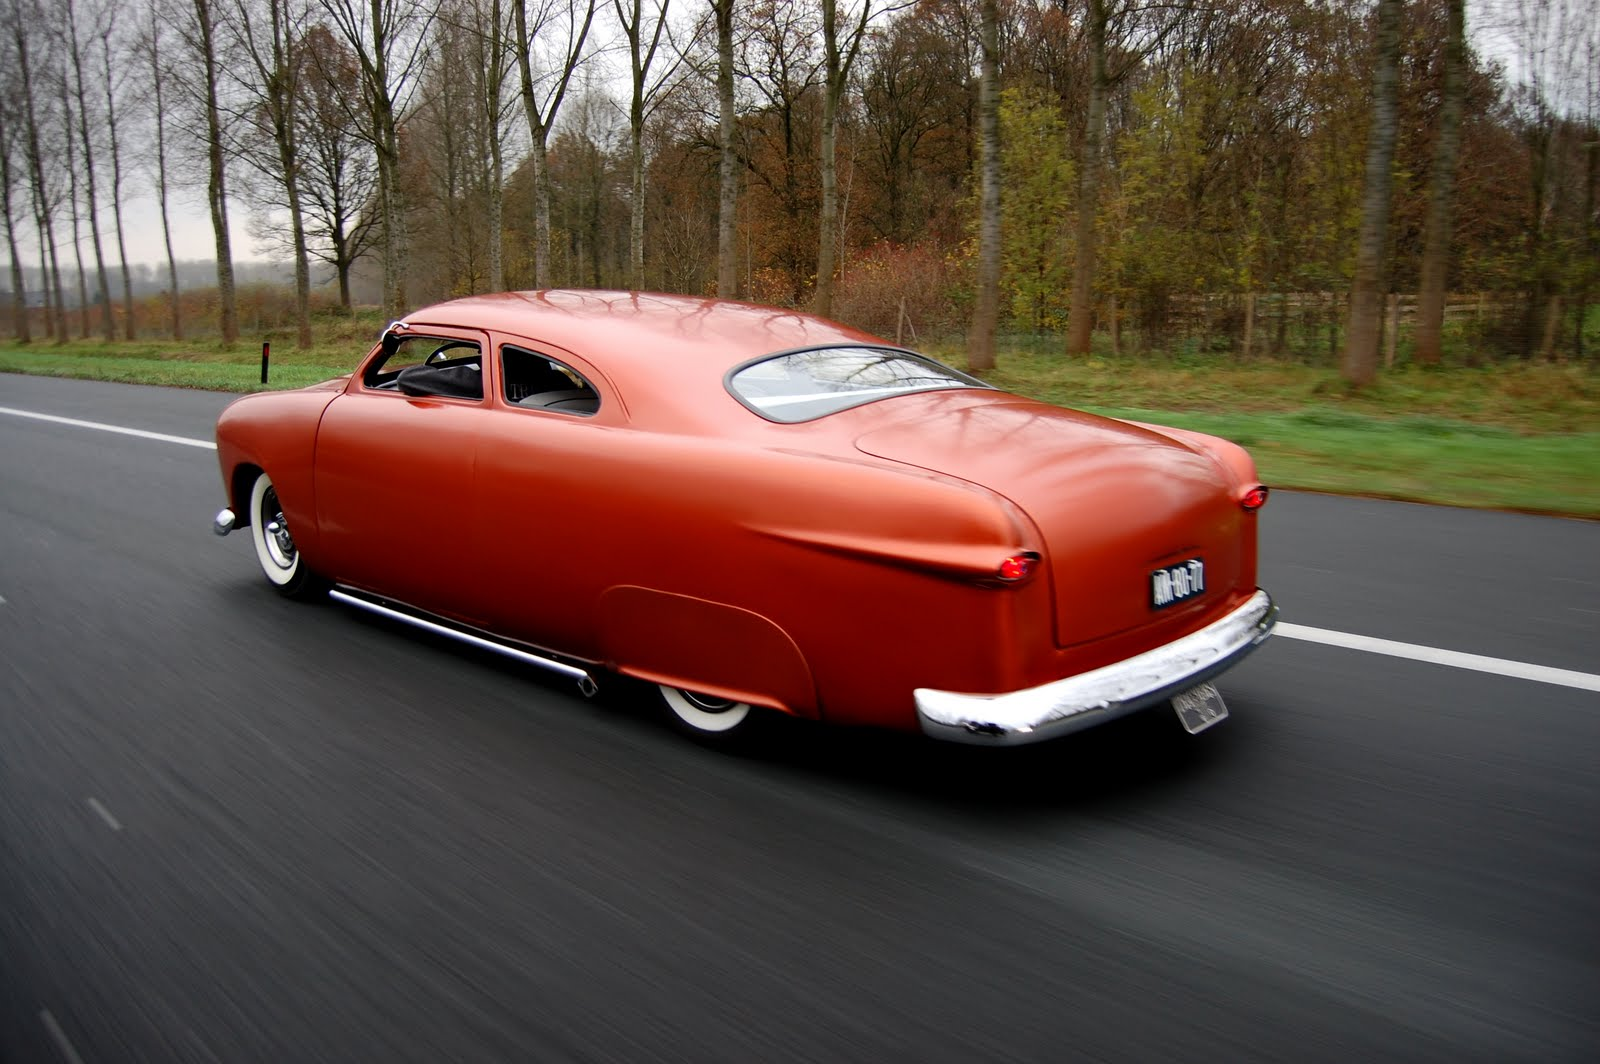 1950 Ford Shoebox for Sale http://customsicklesdiaries.blogspot.com/2011/05/for-sale-shoebox-1950.html